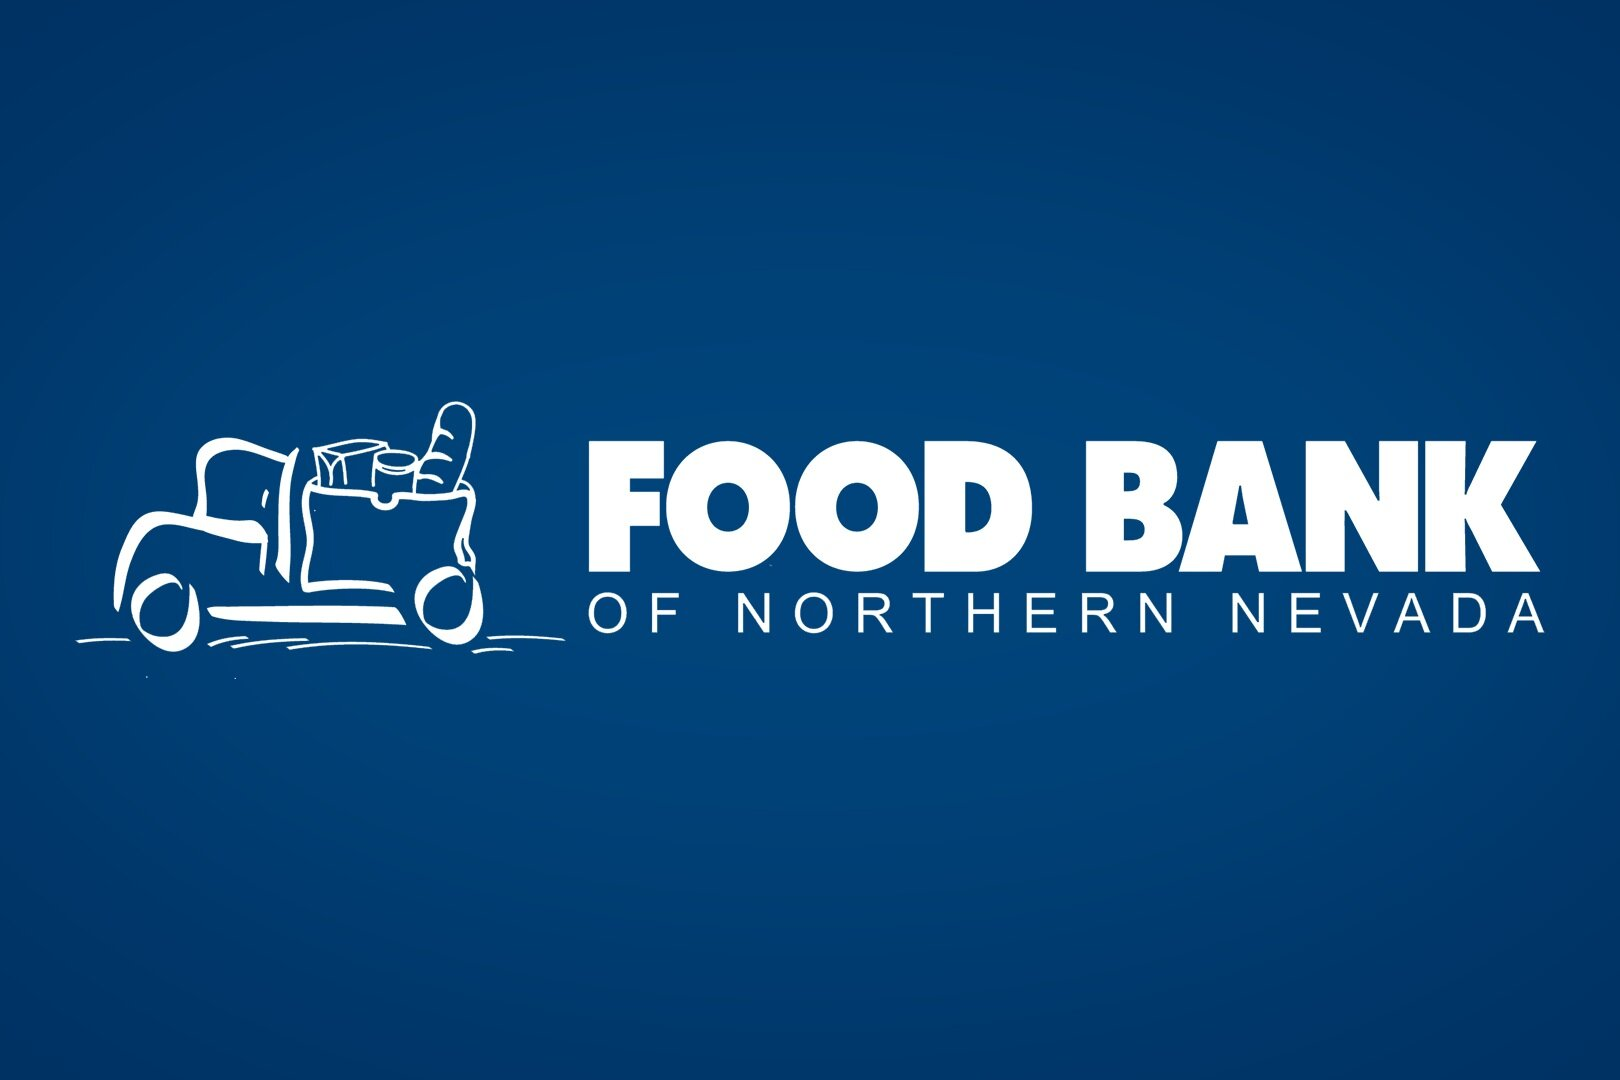 Website - The Food Bank of Northern Nevada wanted a website that was easy to update and prioritized online fundraising strategies. Developed on a proprietary content management system, I designed a story-driven UI that drove donations.